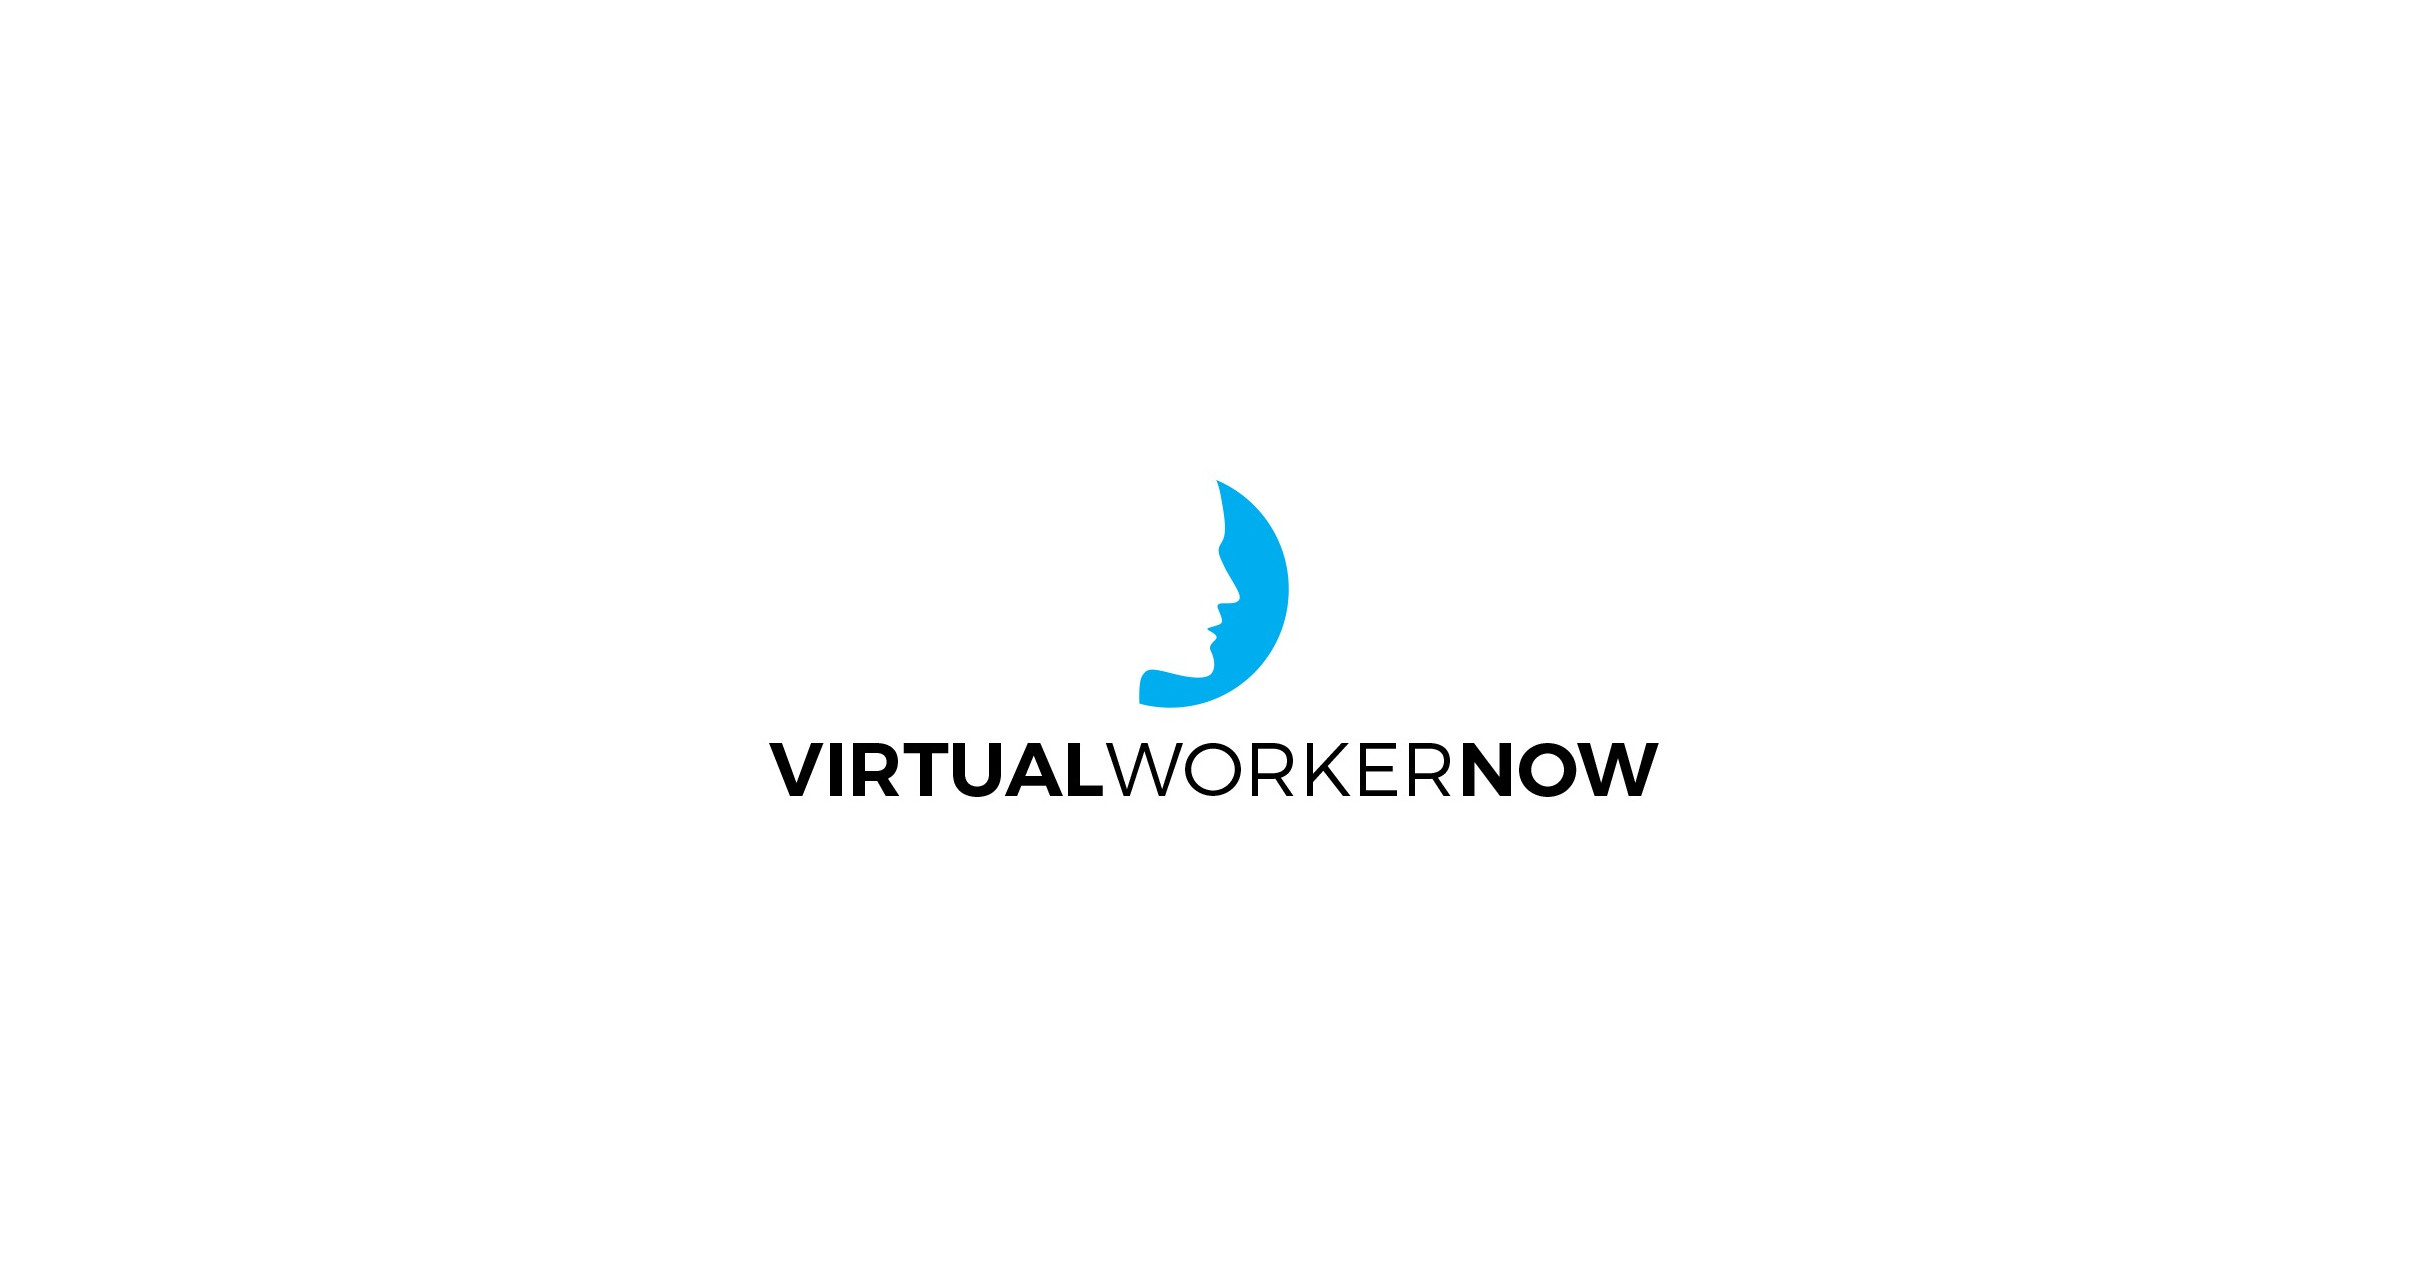 صورة Job: Director of Culture Executive Assistant at Virtual Worker Now in Cairo, Egypt